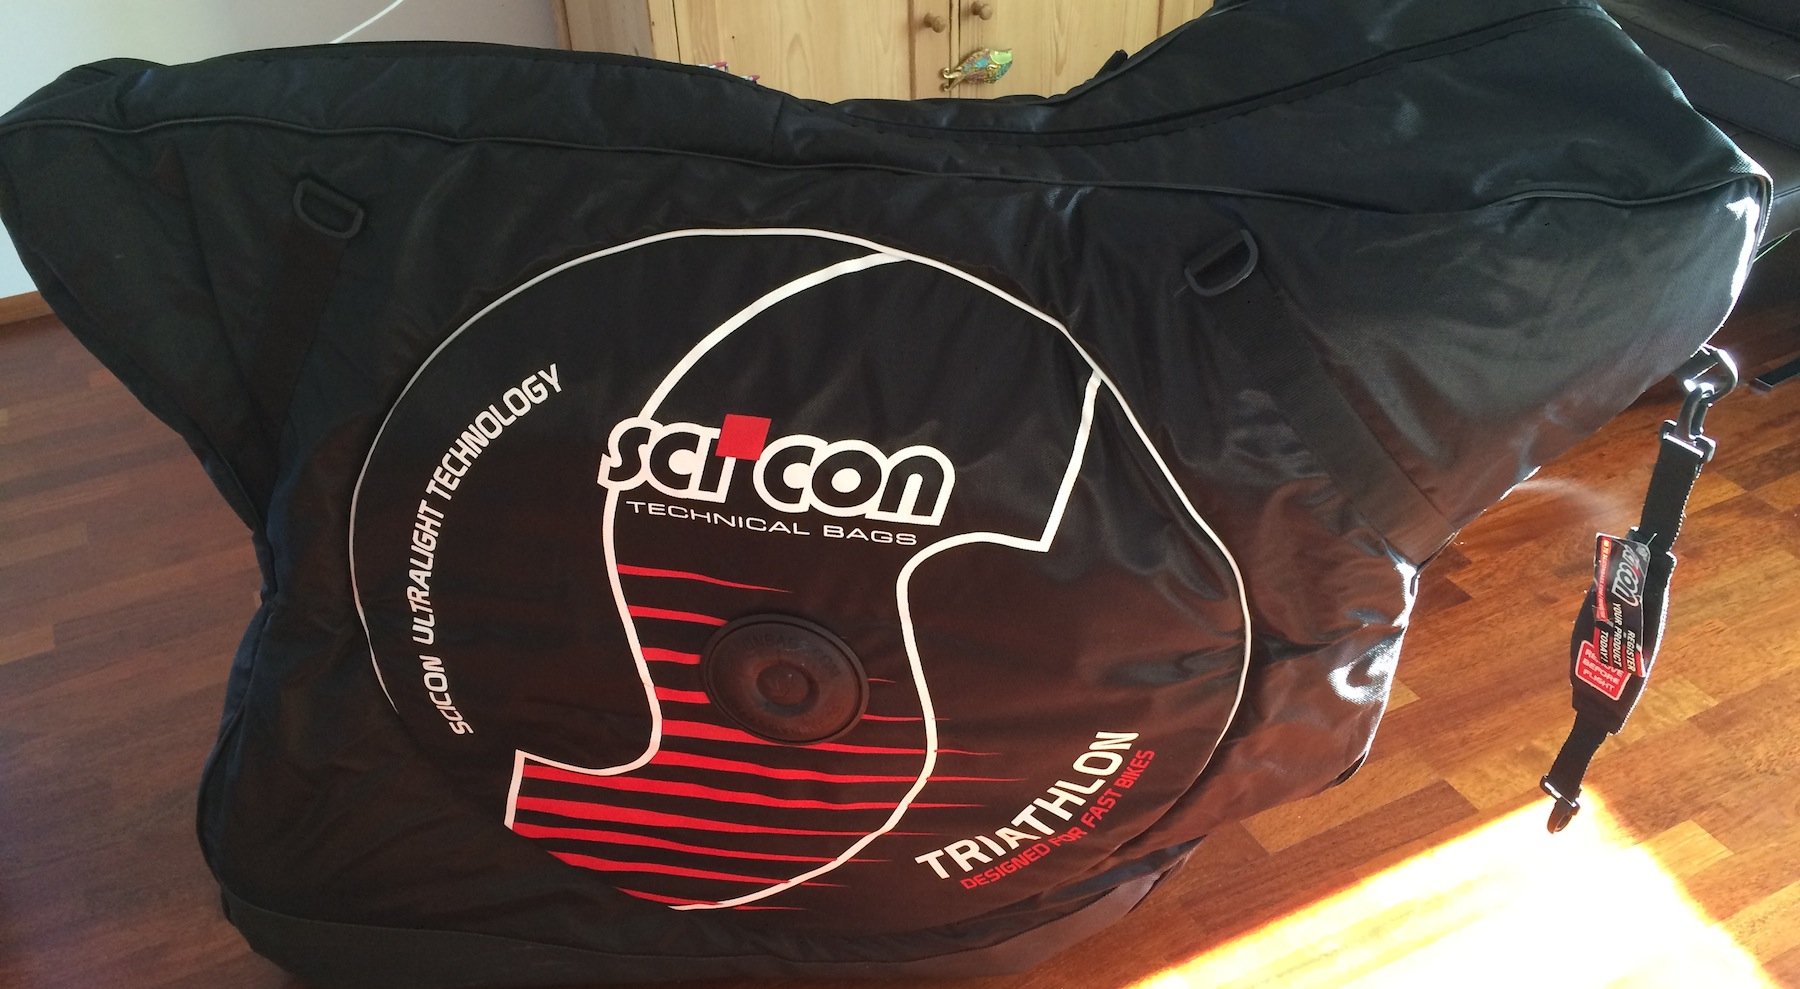 Scicon Triathlon Bike Bag